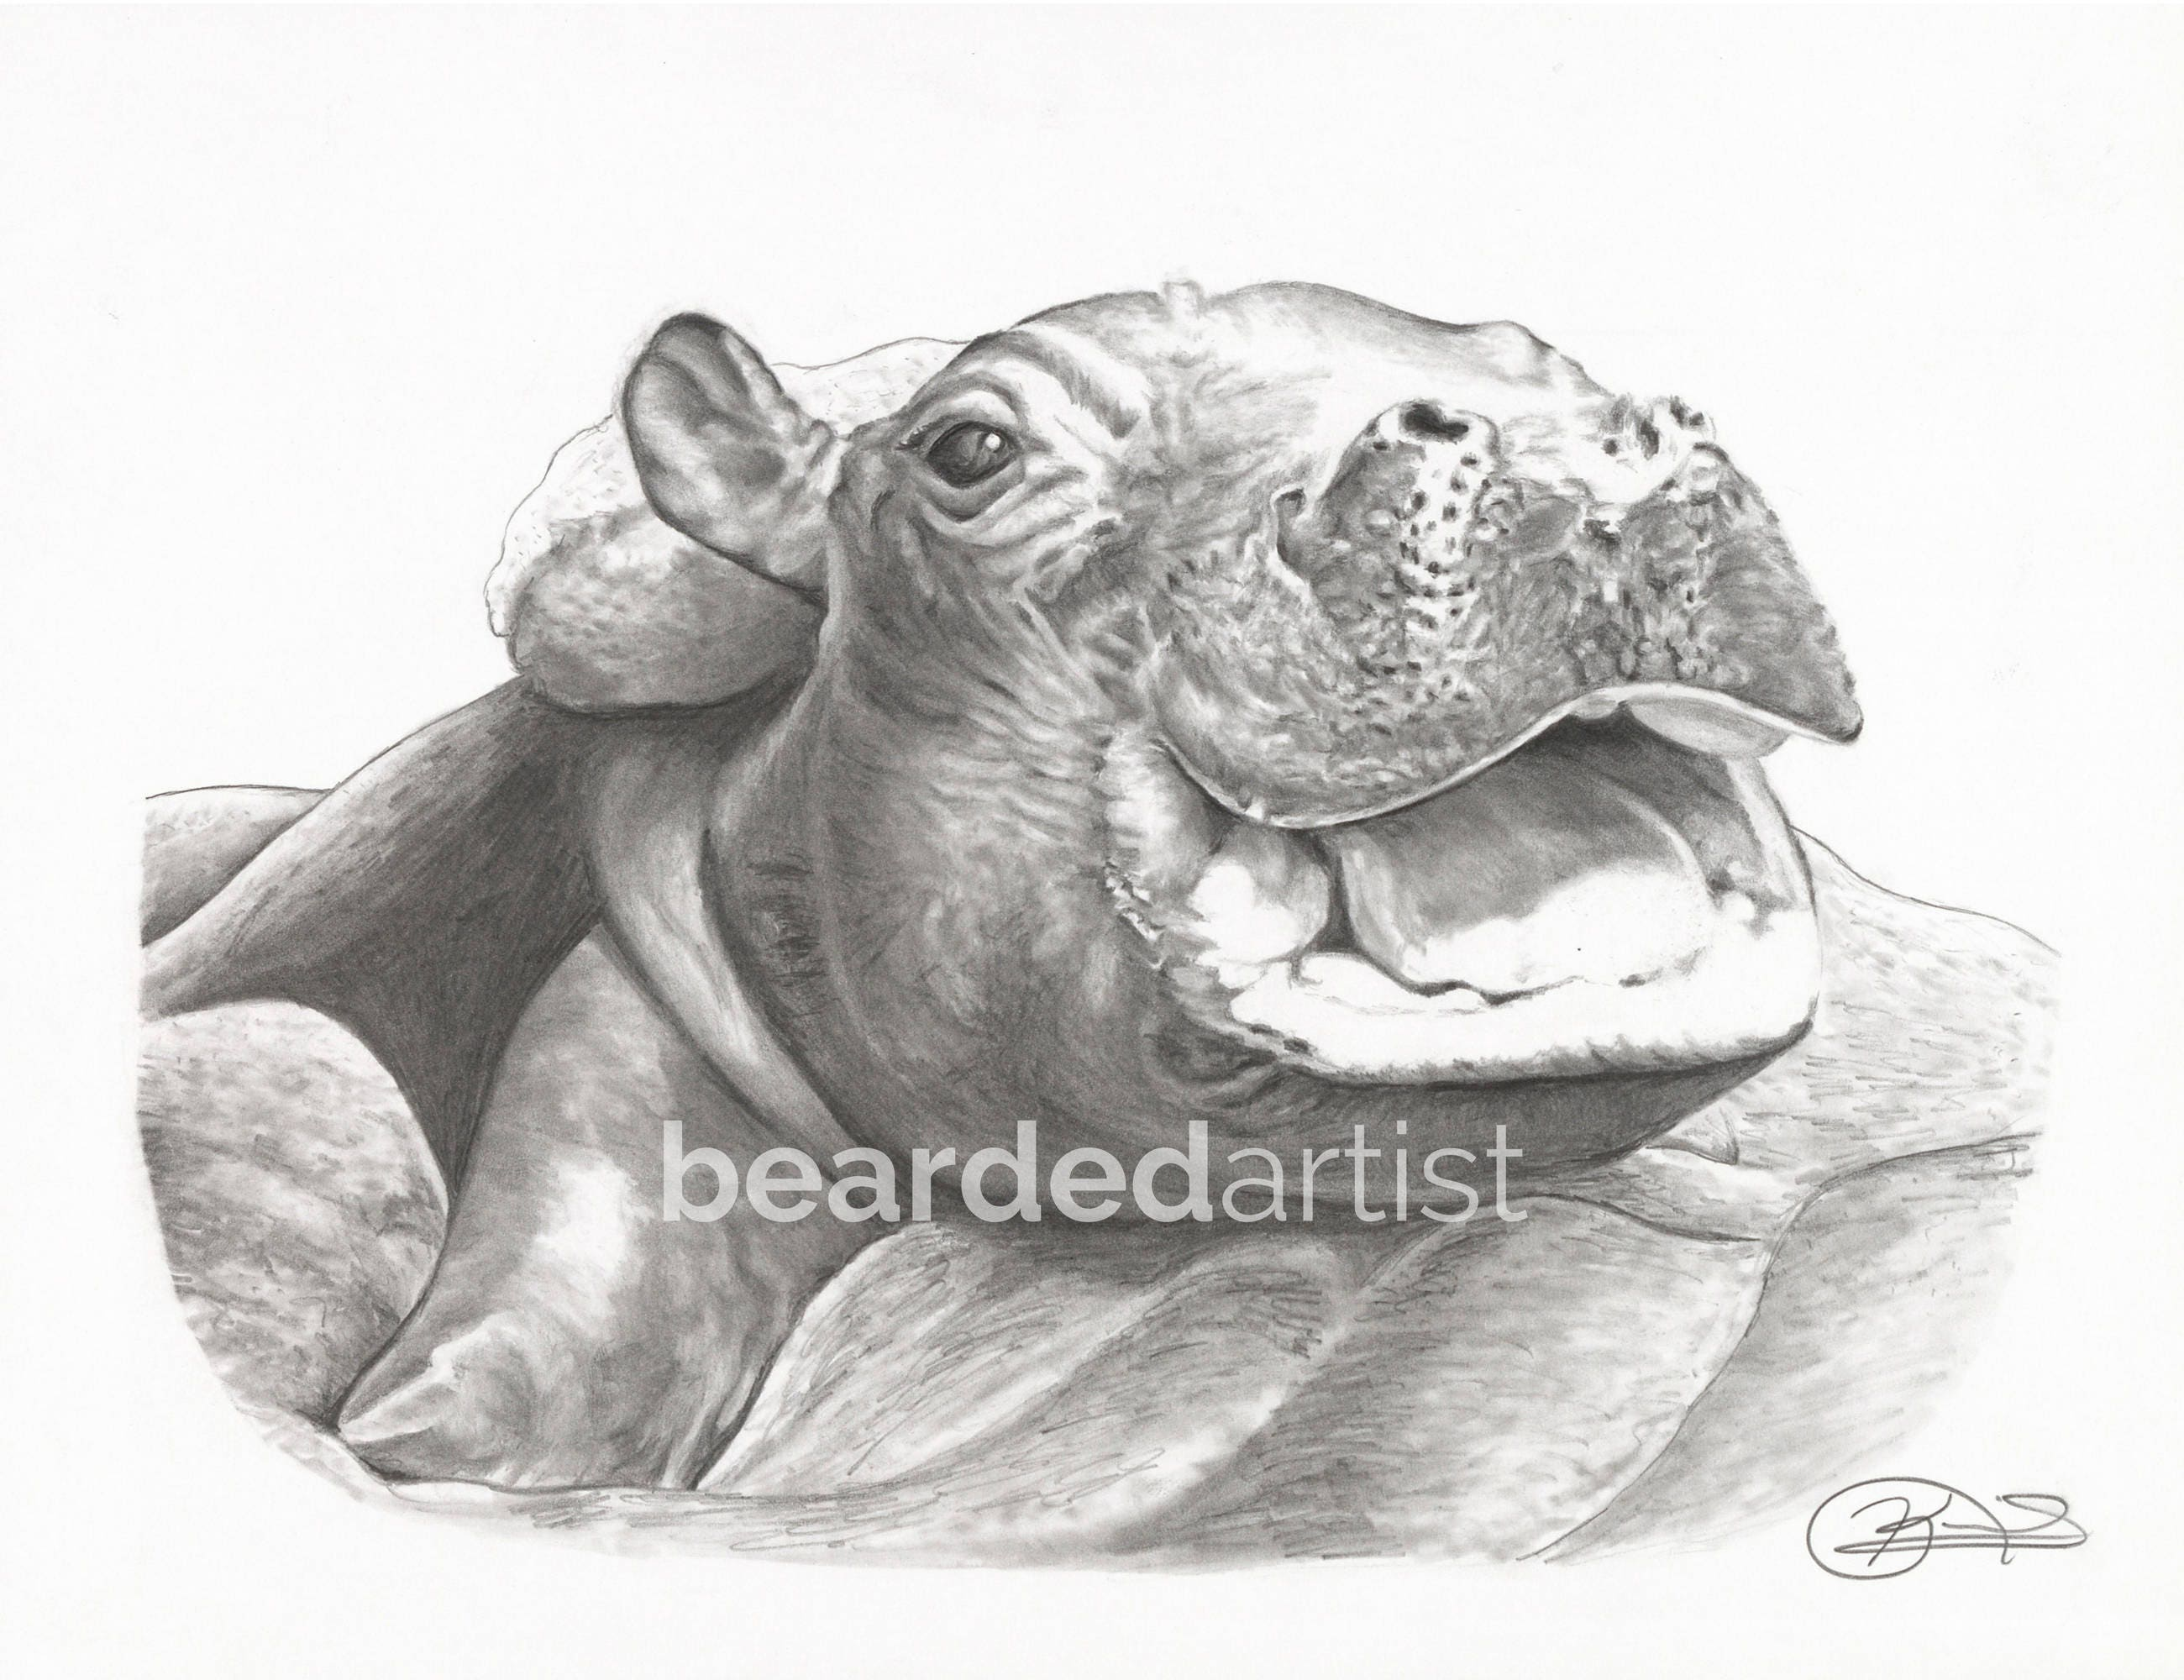 8.5x11 OR 11x17 Print of Fiona the Hippo from the